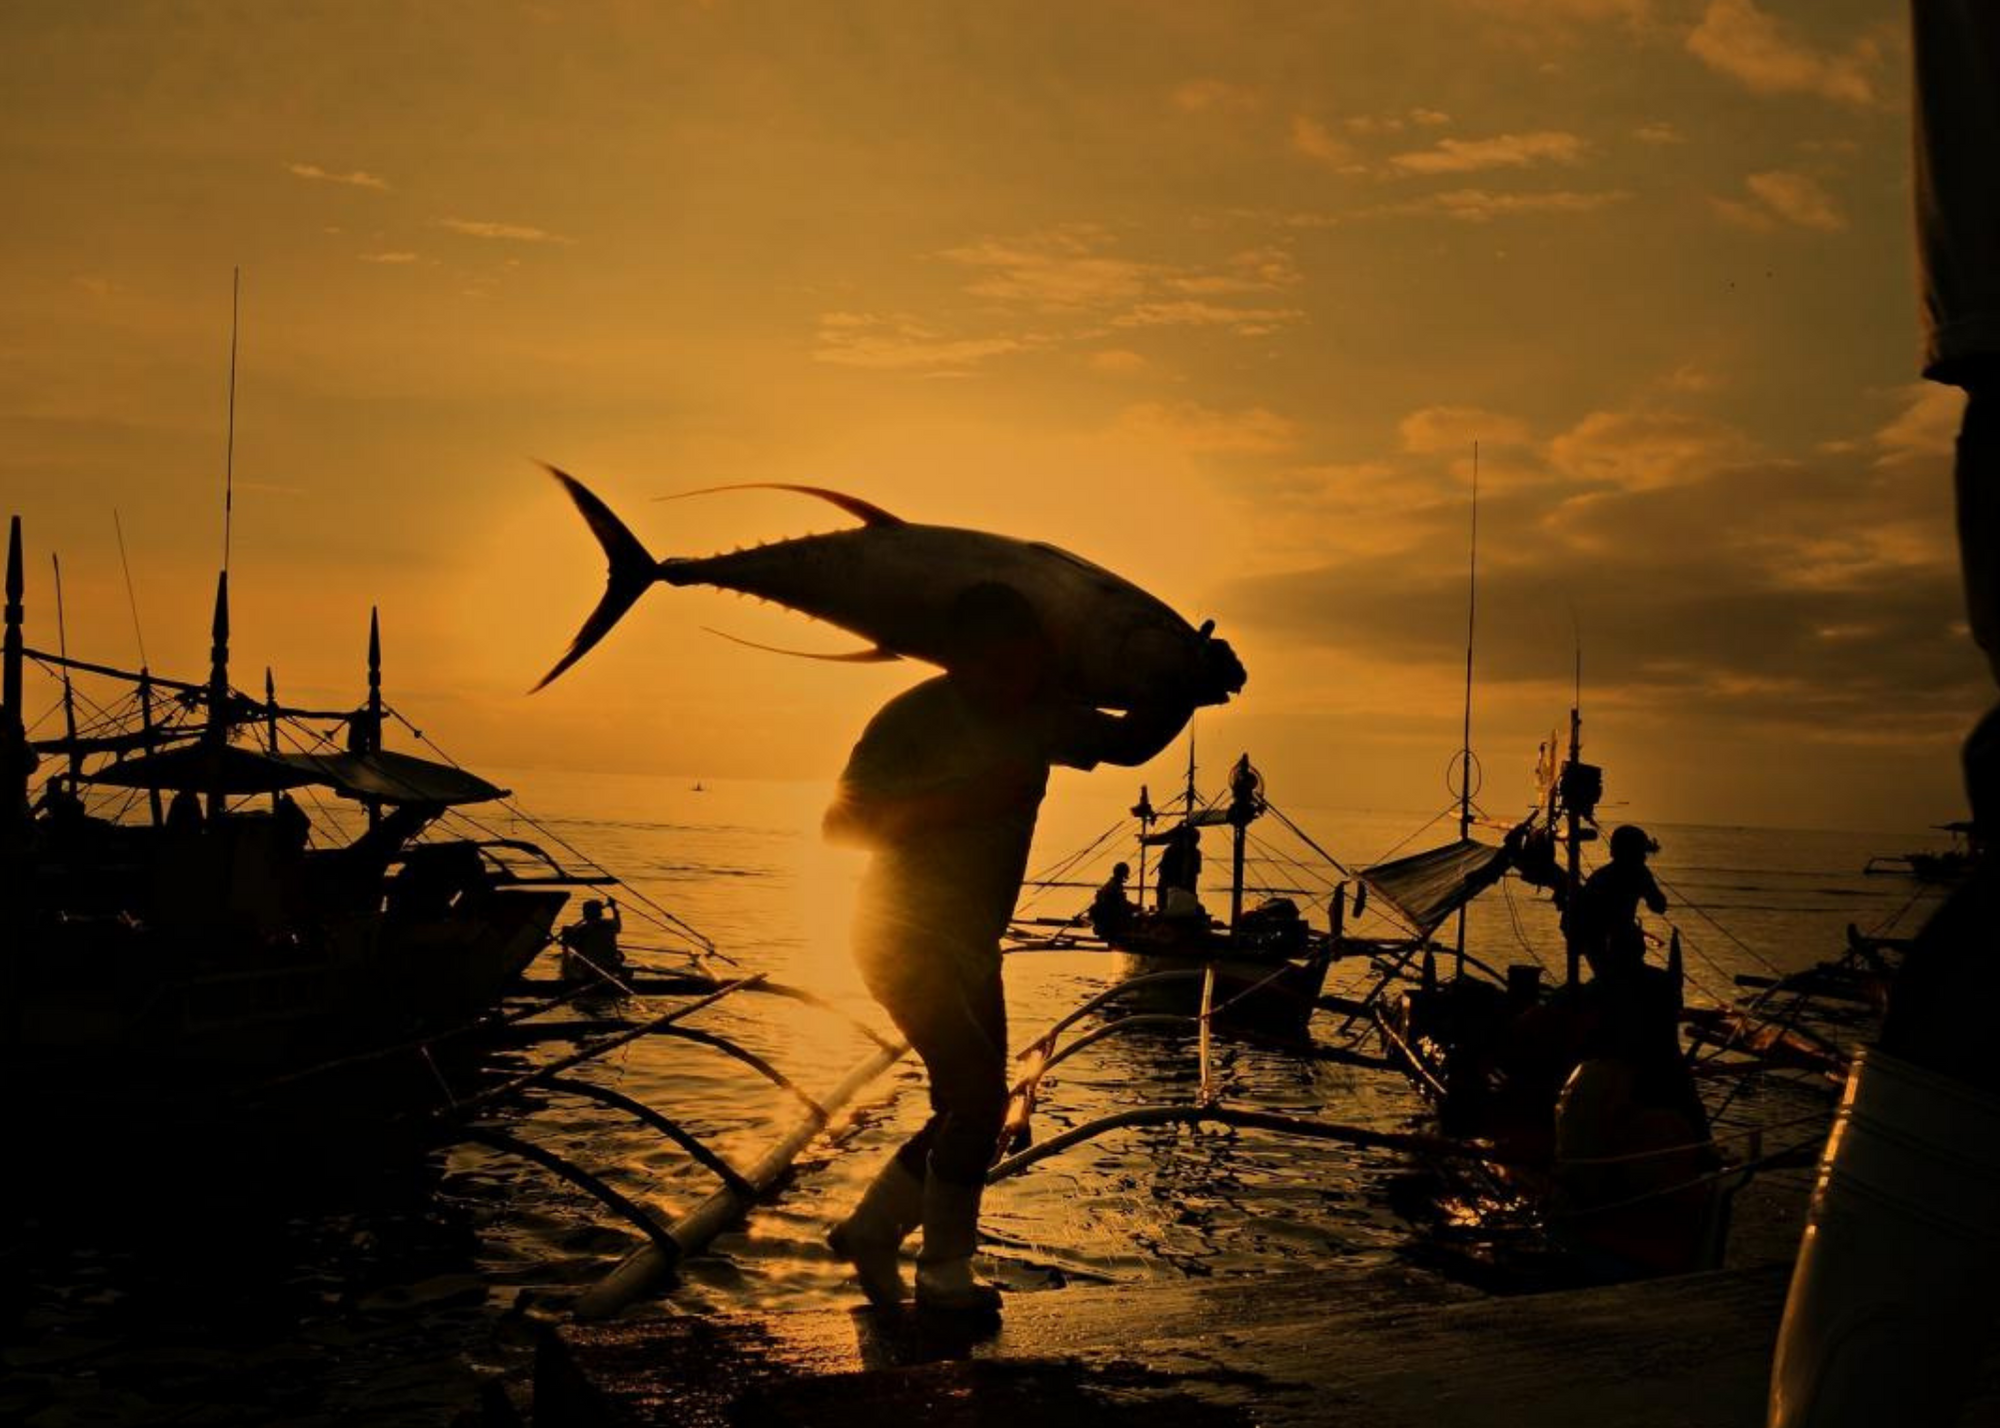 Fisherman carries large catch across dock at sunset